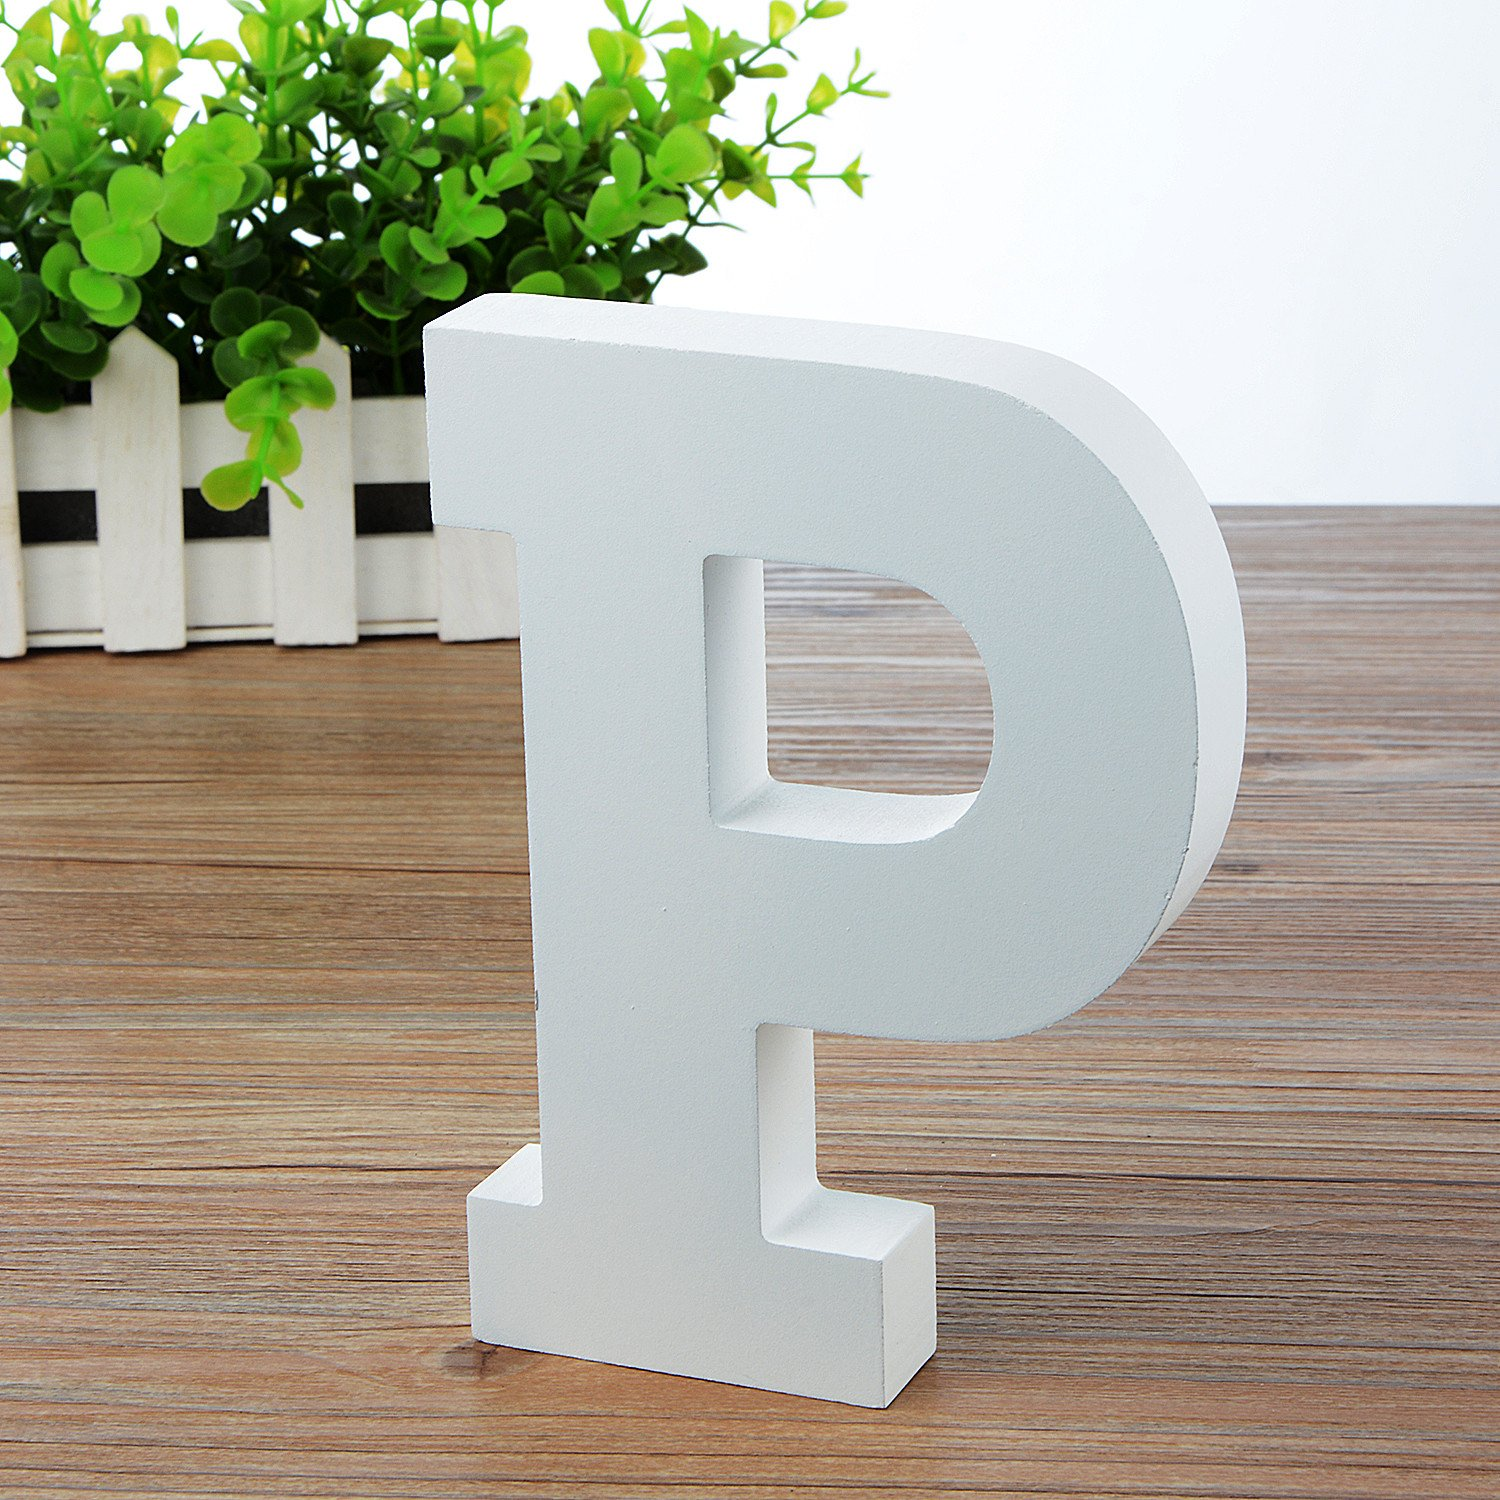 Baby Name and Girls Bedroom D/écor Wooden Hanging Wall Letters /& White Decorative Wall Letter for Childrens Nursery Babys Room